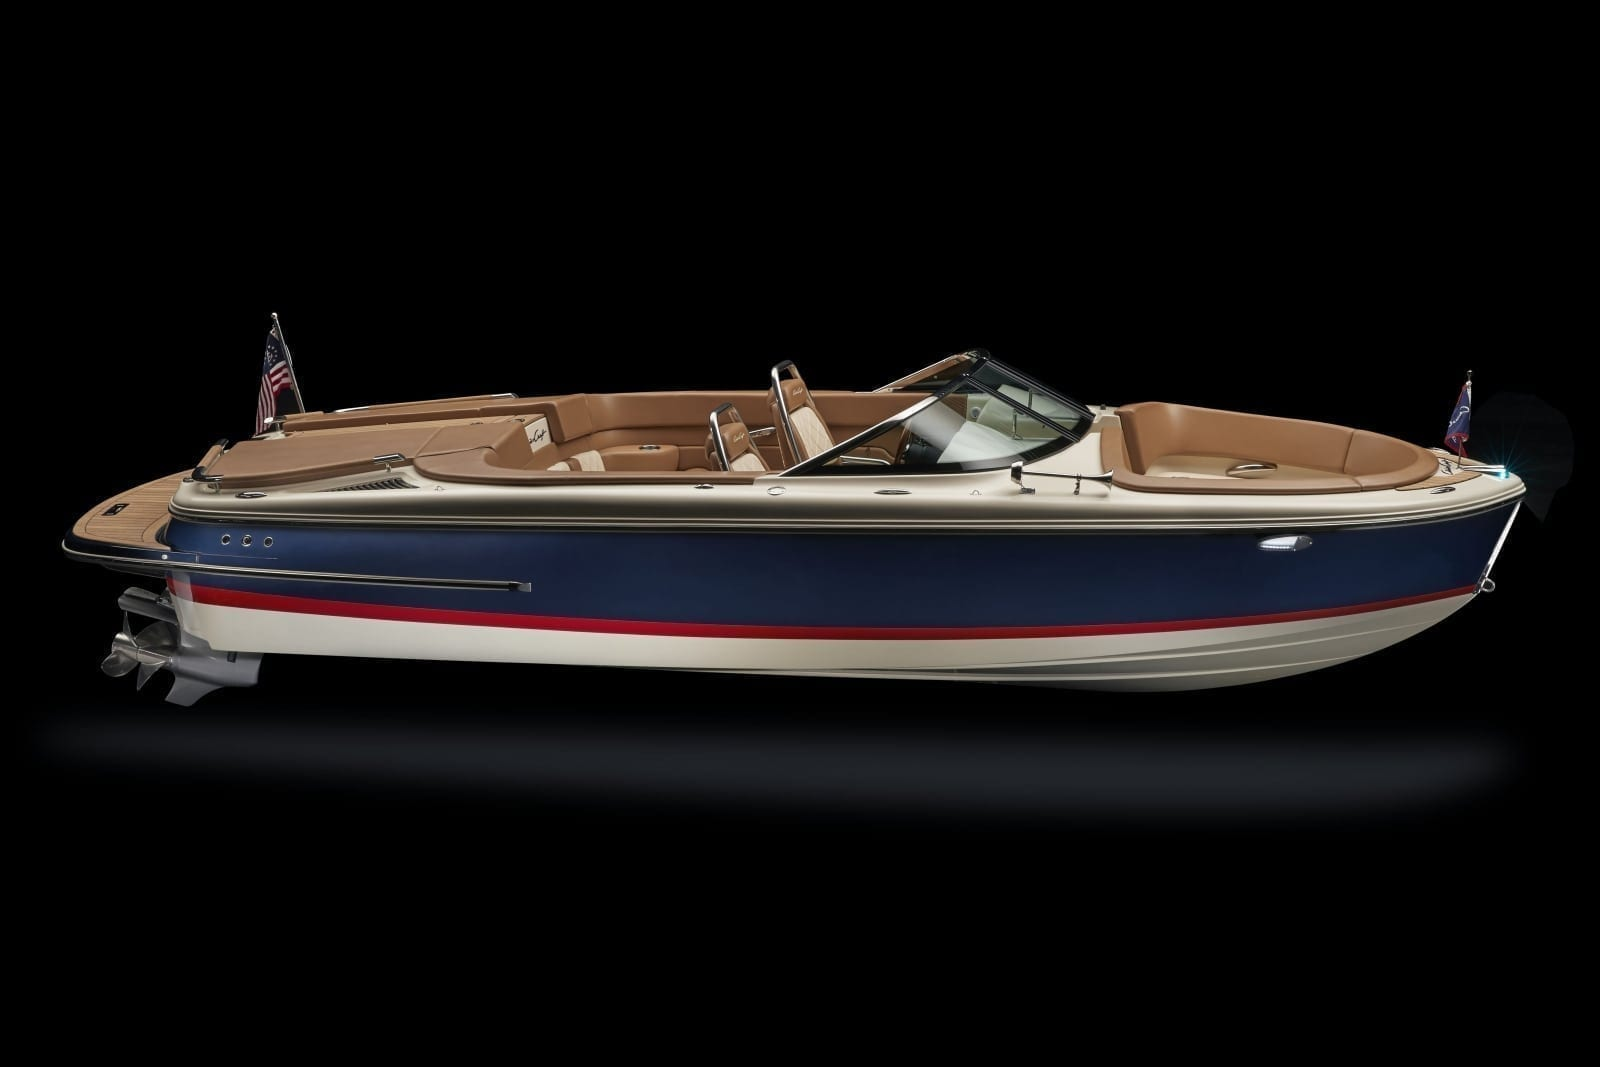 Chris Craft Carina 21 Starboard High Profile View